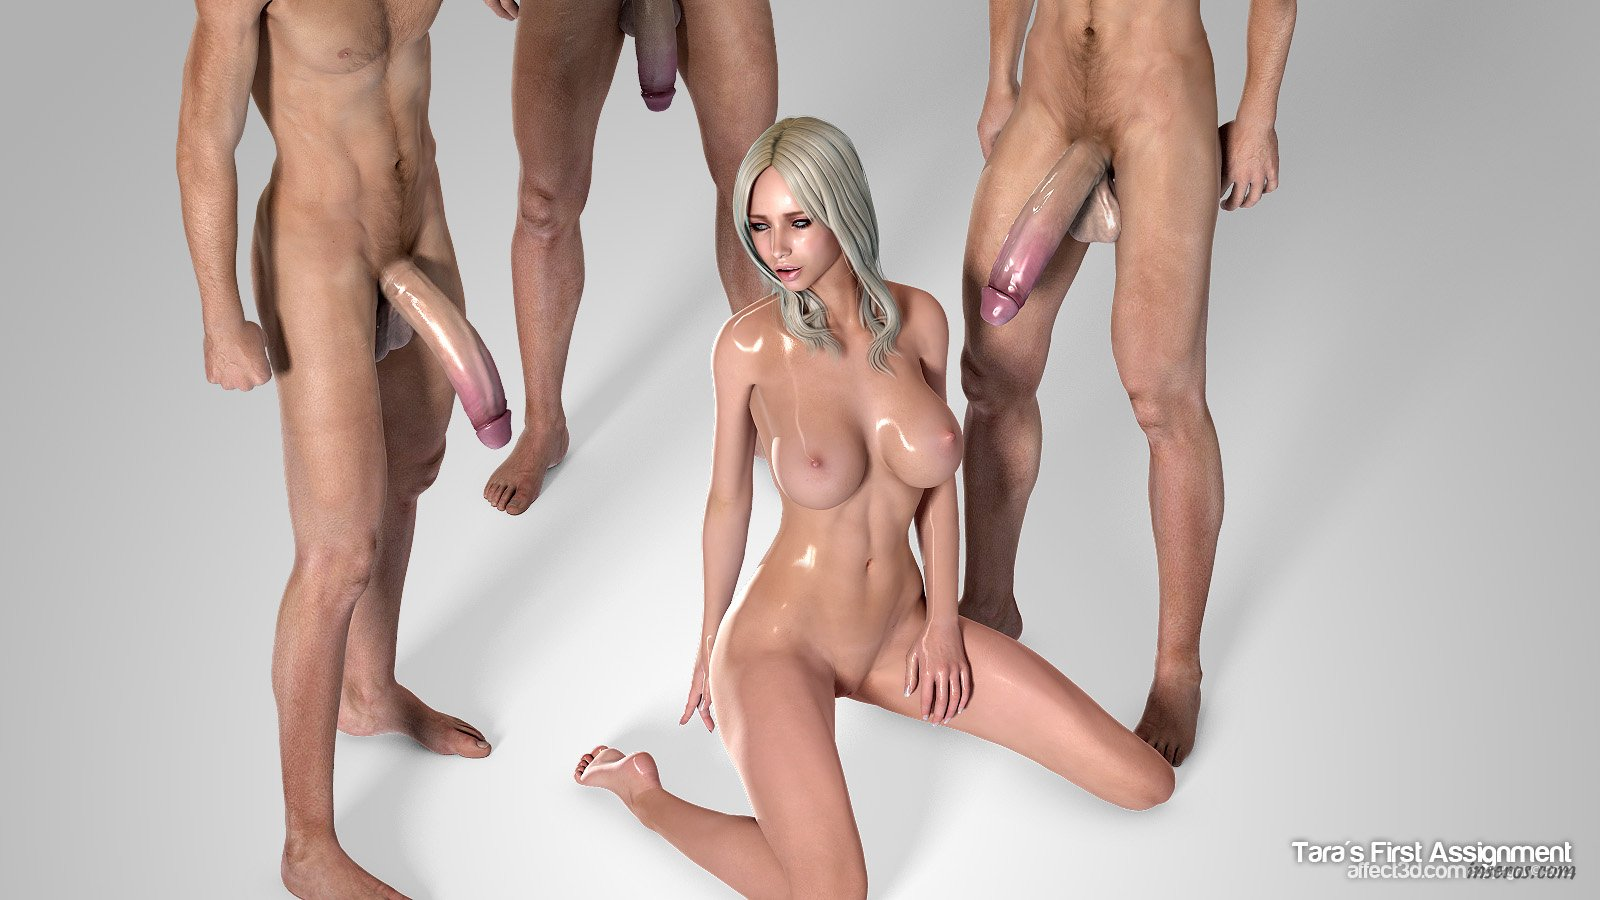 Hd wallpapers 3d xxx sex sexy scene